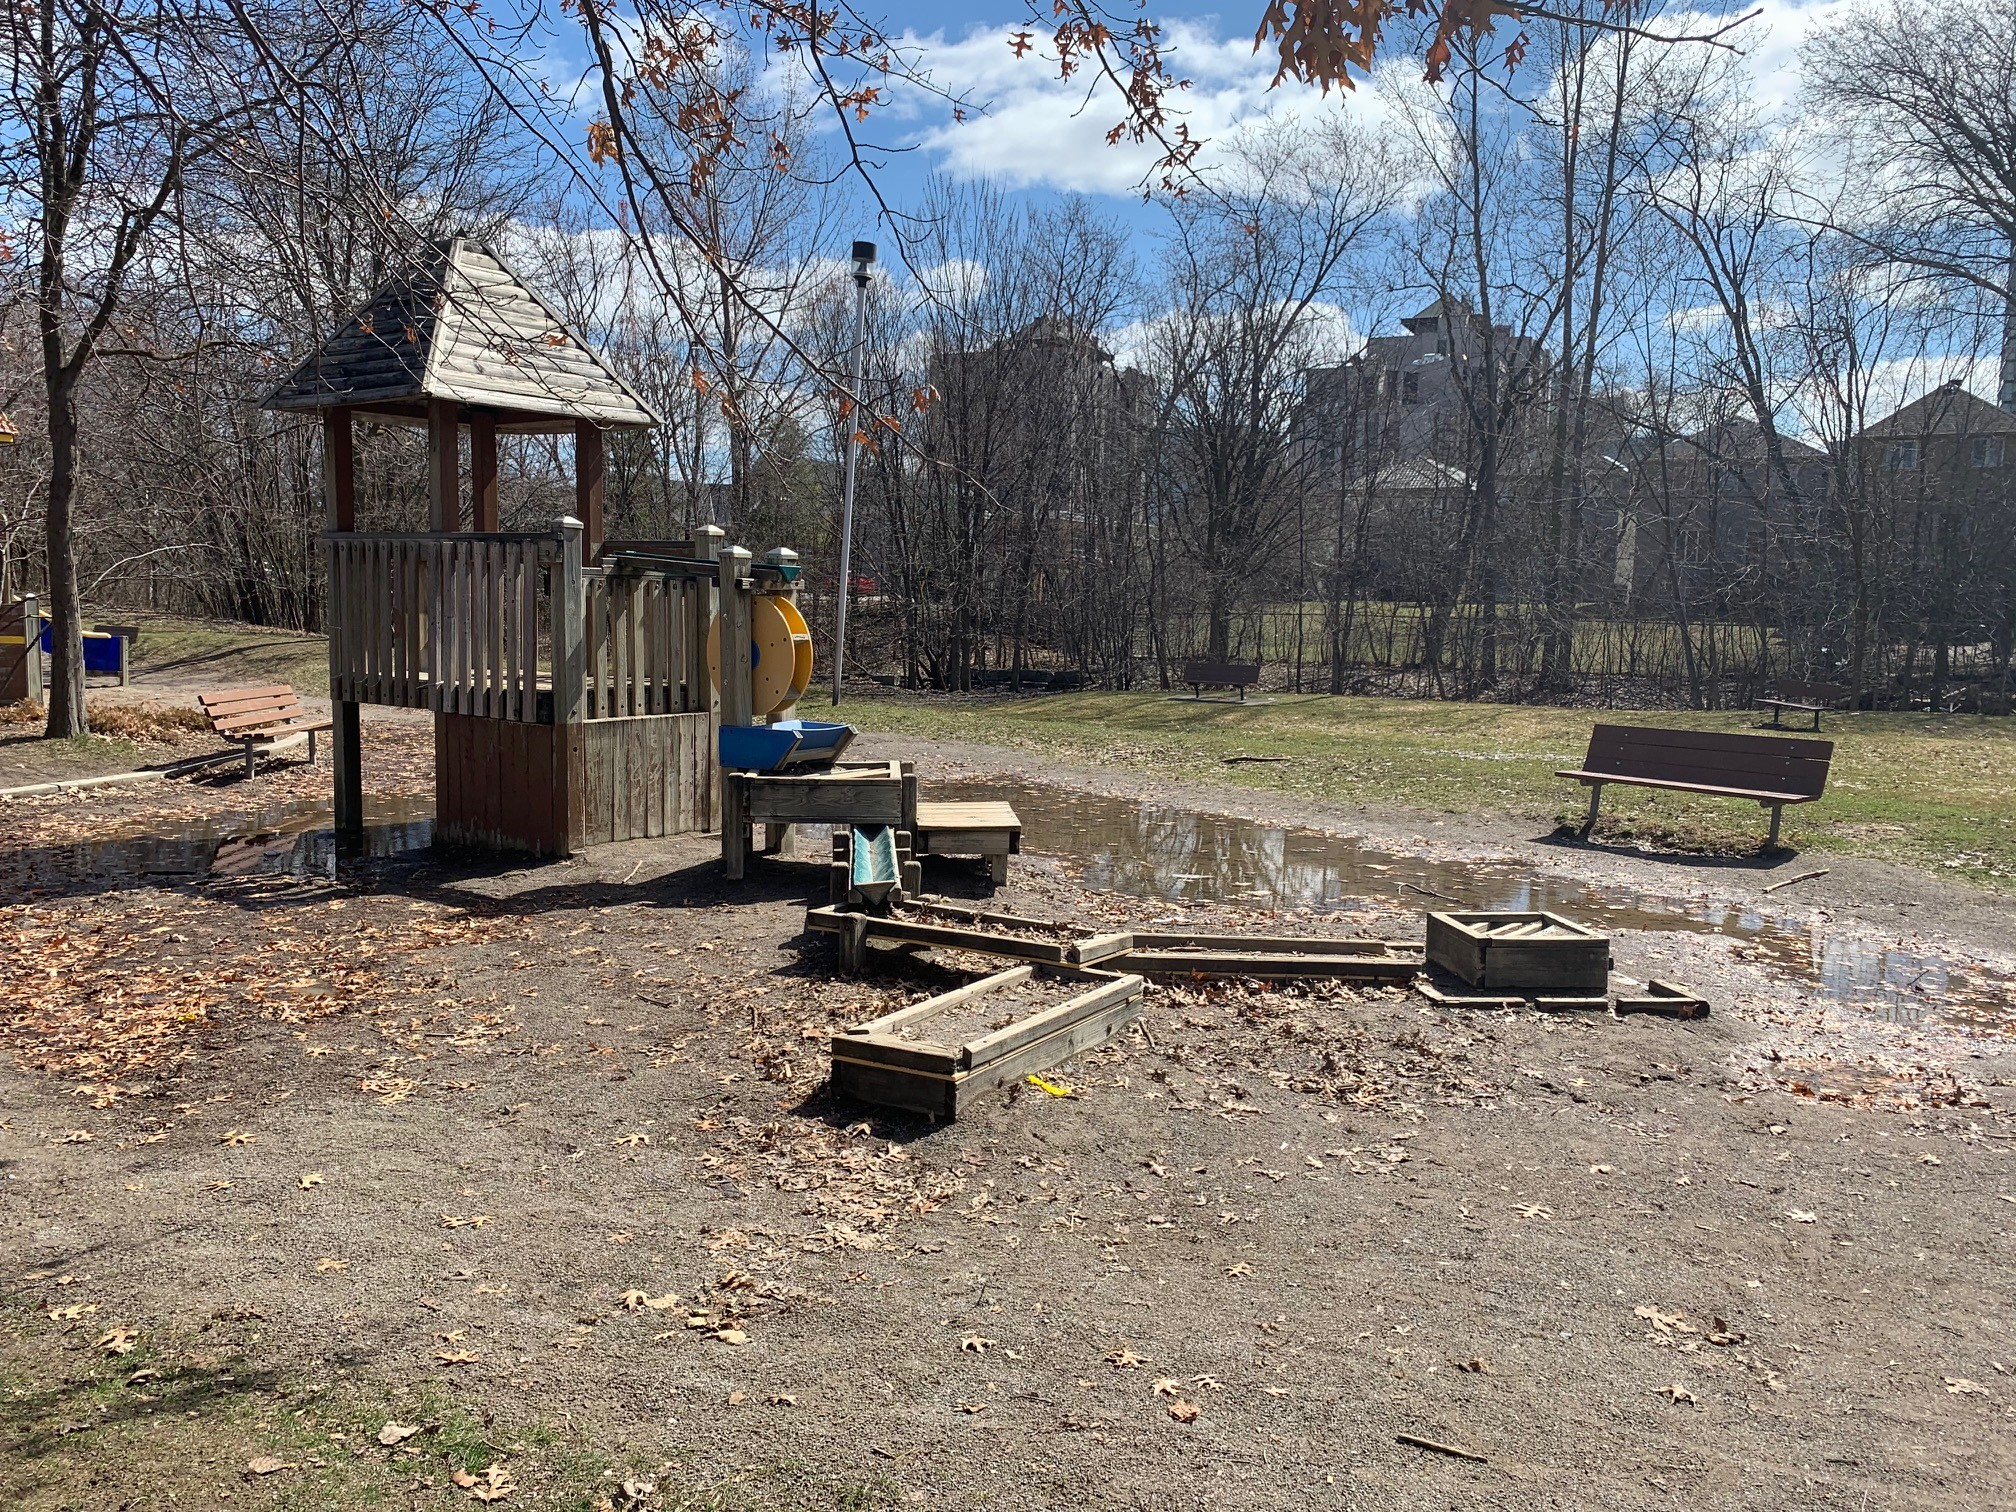 A photograph of the small stand-alone wood structure in the playground with a water mill and wooden channel. Two benches face the play structure. The area is covered in wet sand with some large puddles of water.